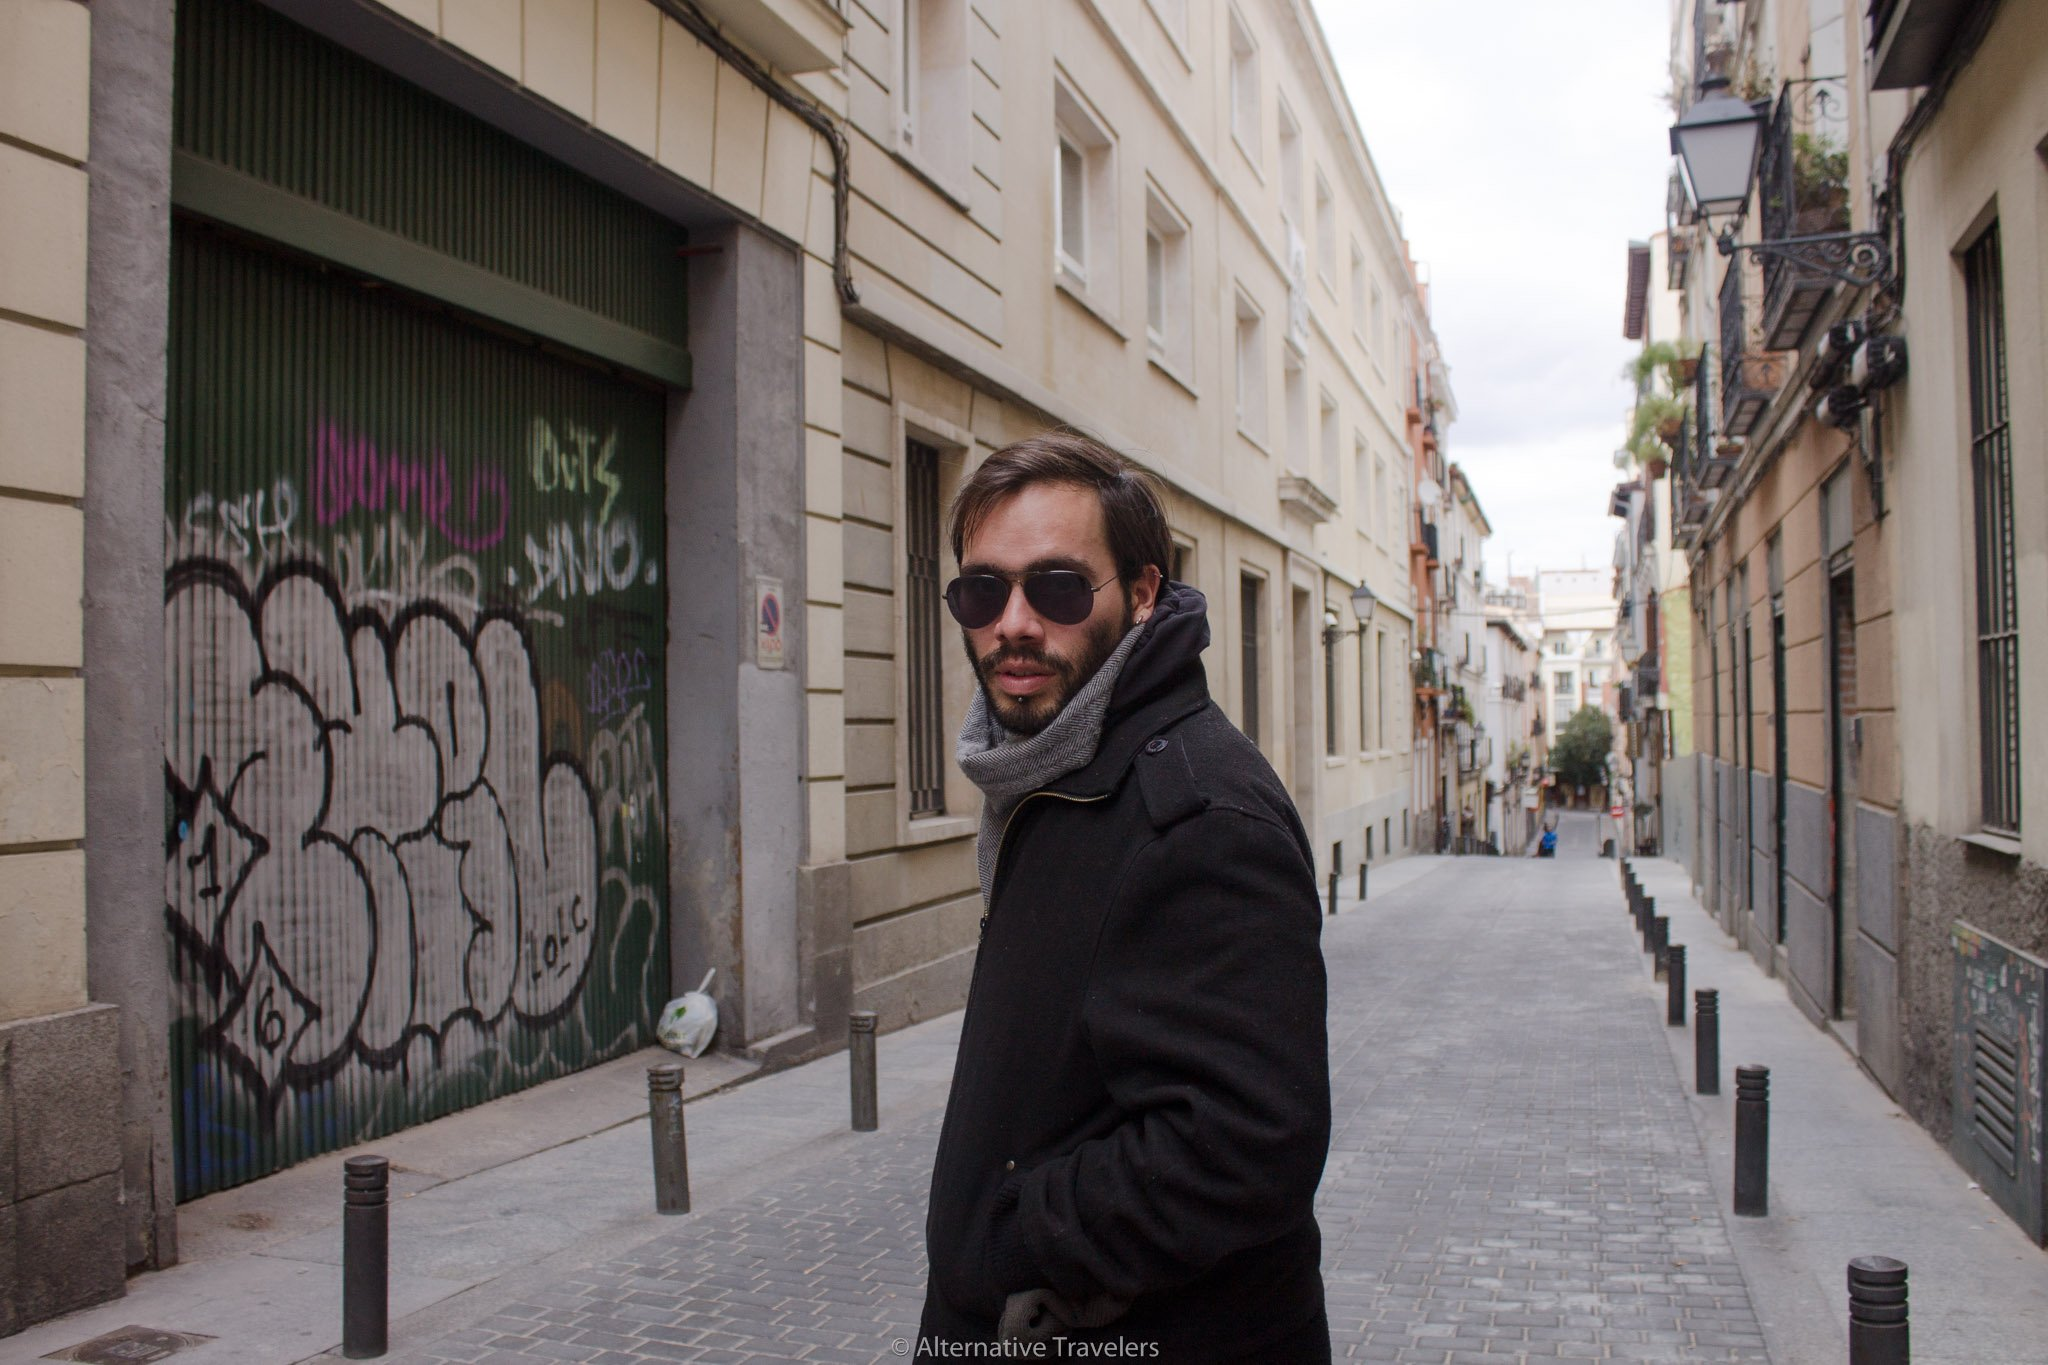 Winter Clothes: A key thing to bring when moving to Spain!